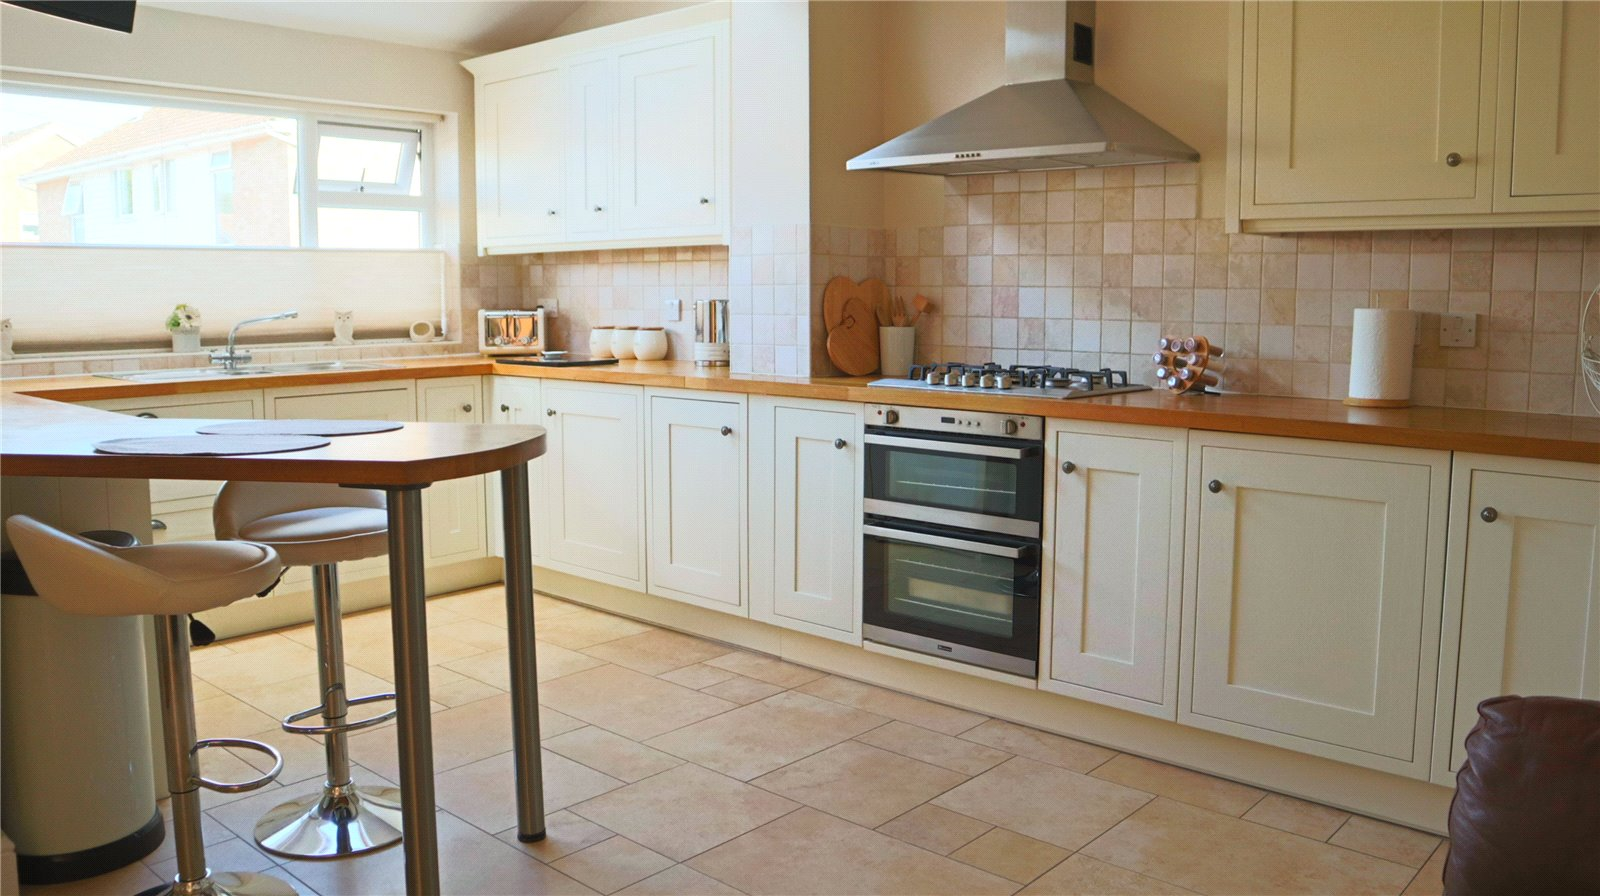 3 bed house for sale in Hathaway Close, Eaton Socon 1